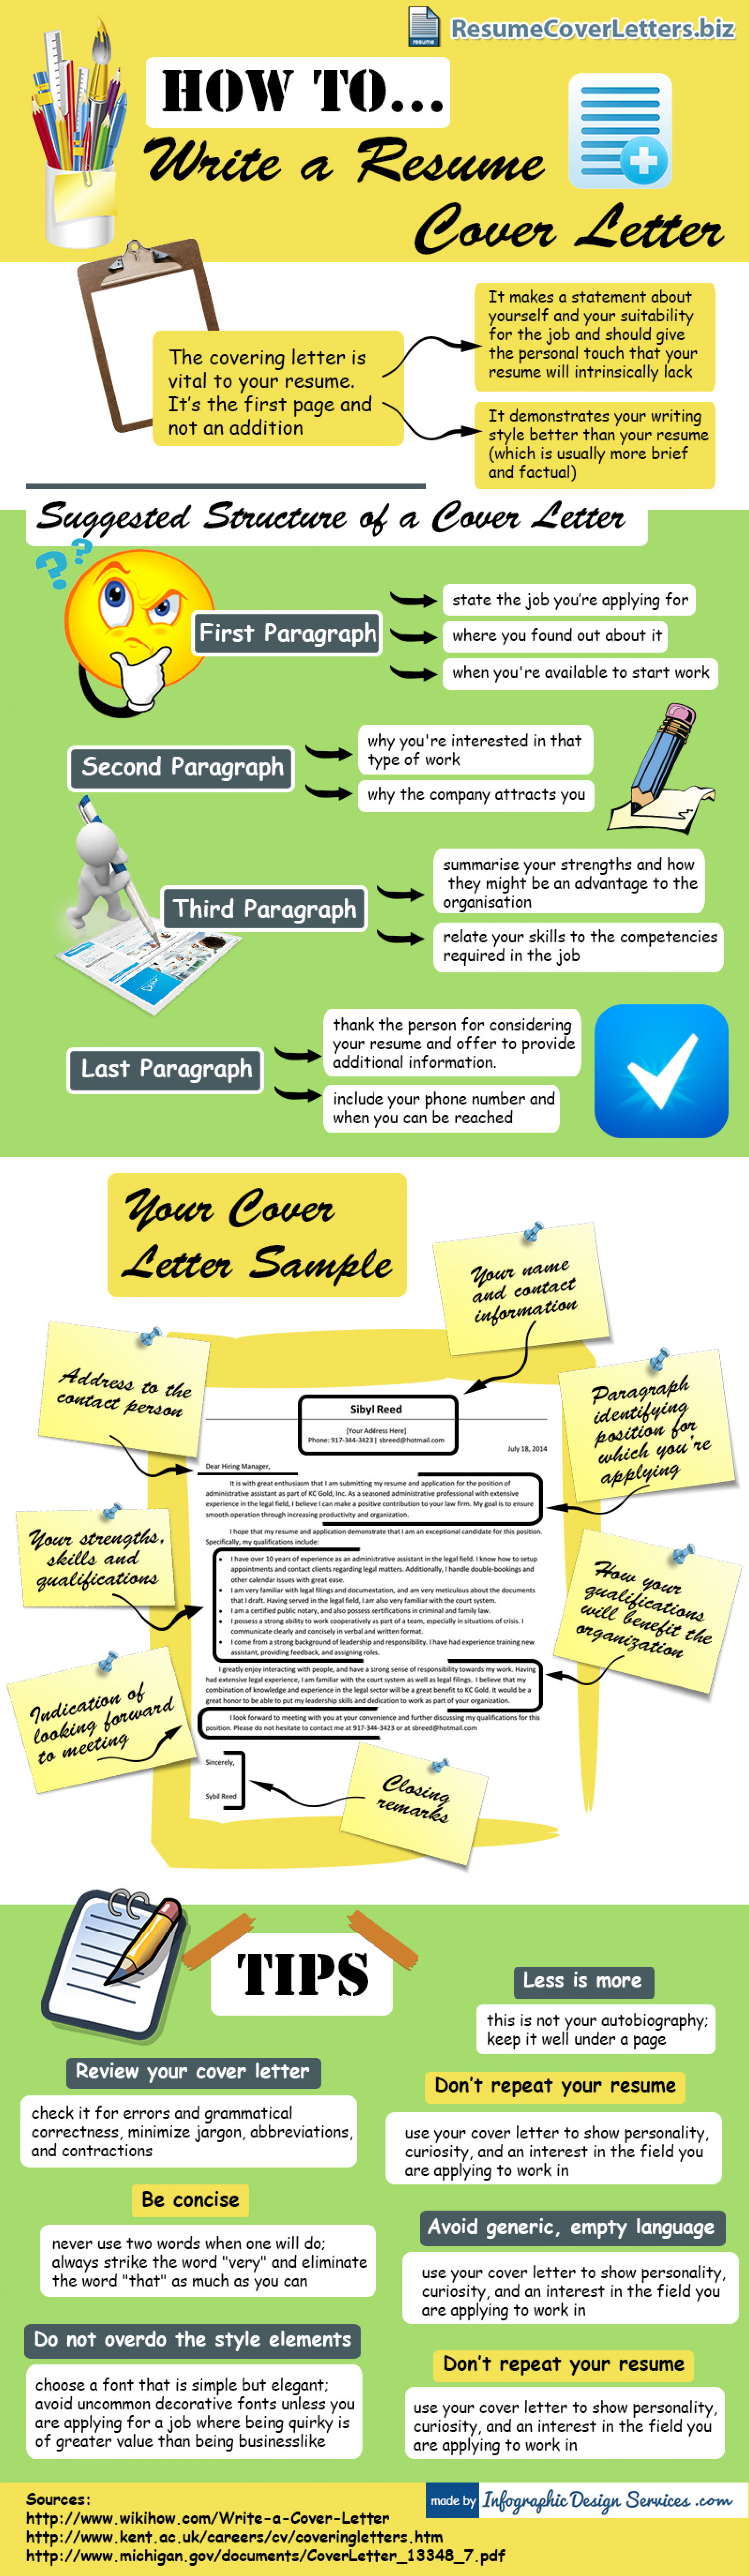 Resume Cover Letter Writing Tips Infographic  Tips For A Resume